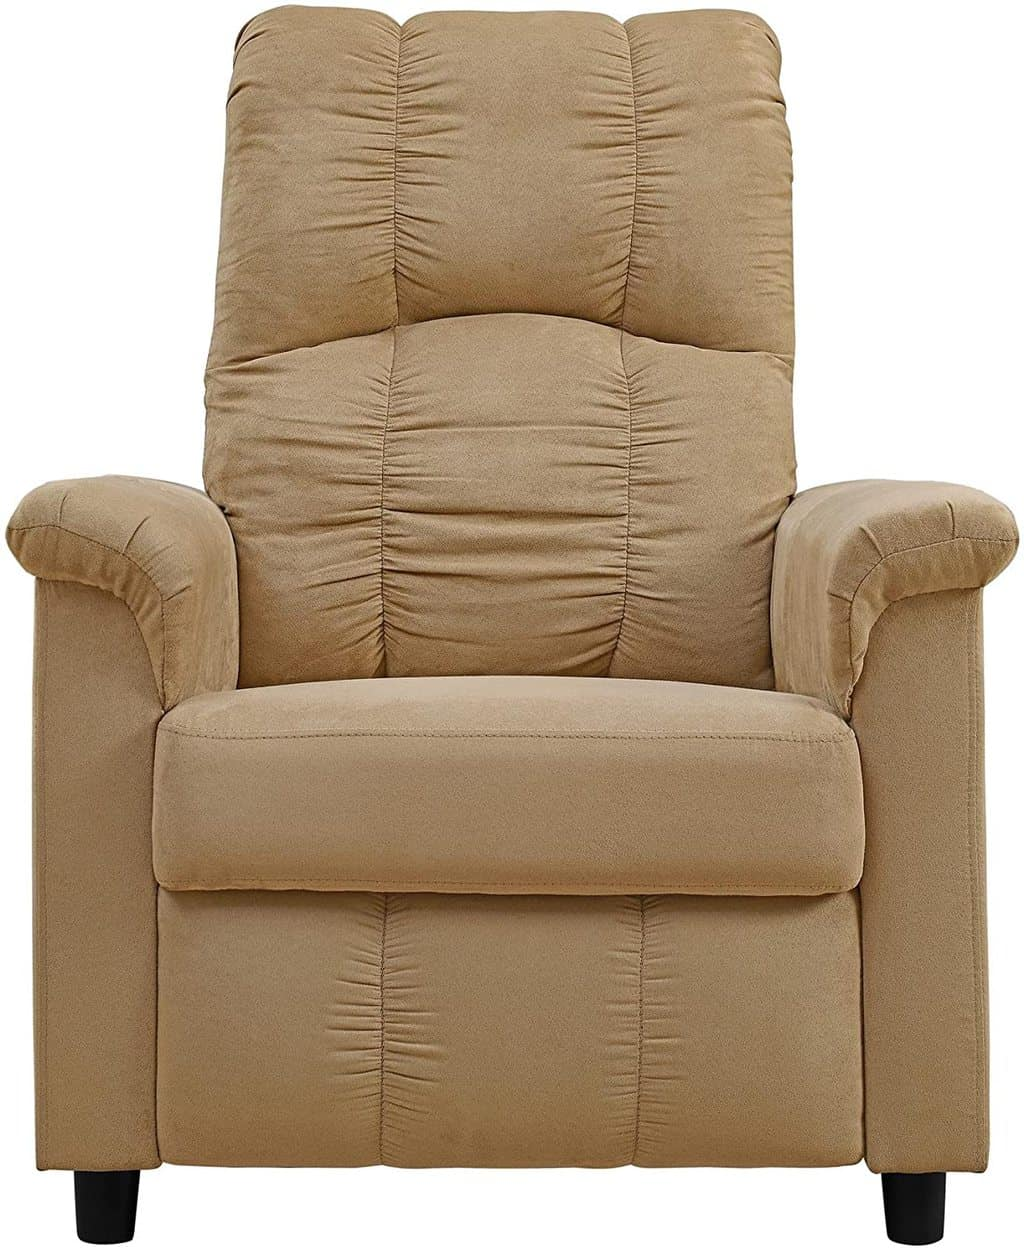 21. Dorel Living Recliner, Slim